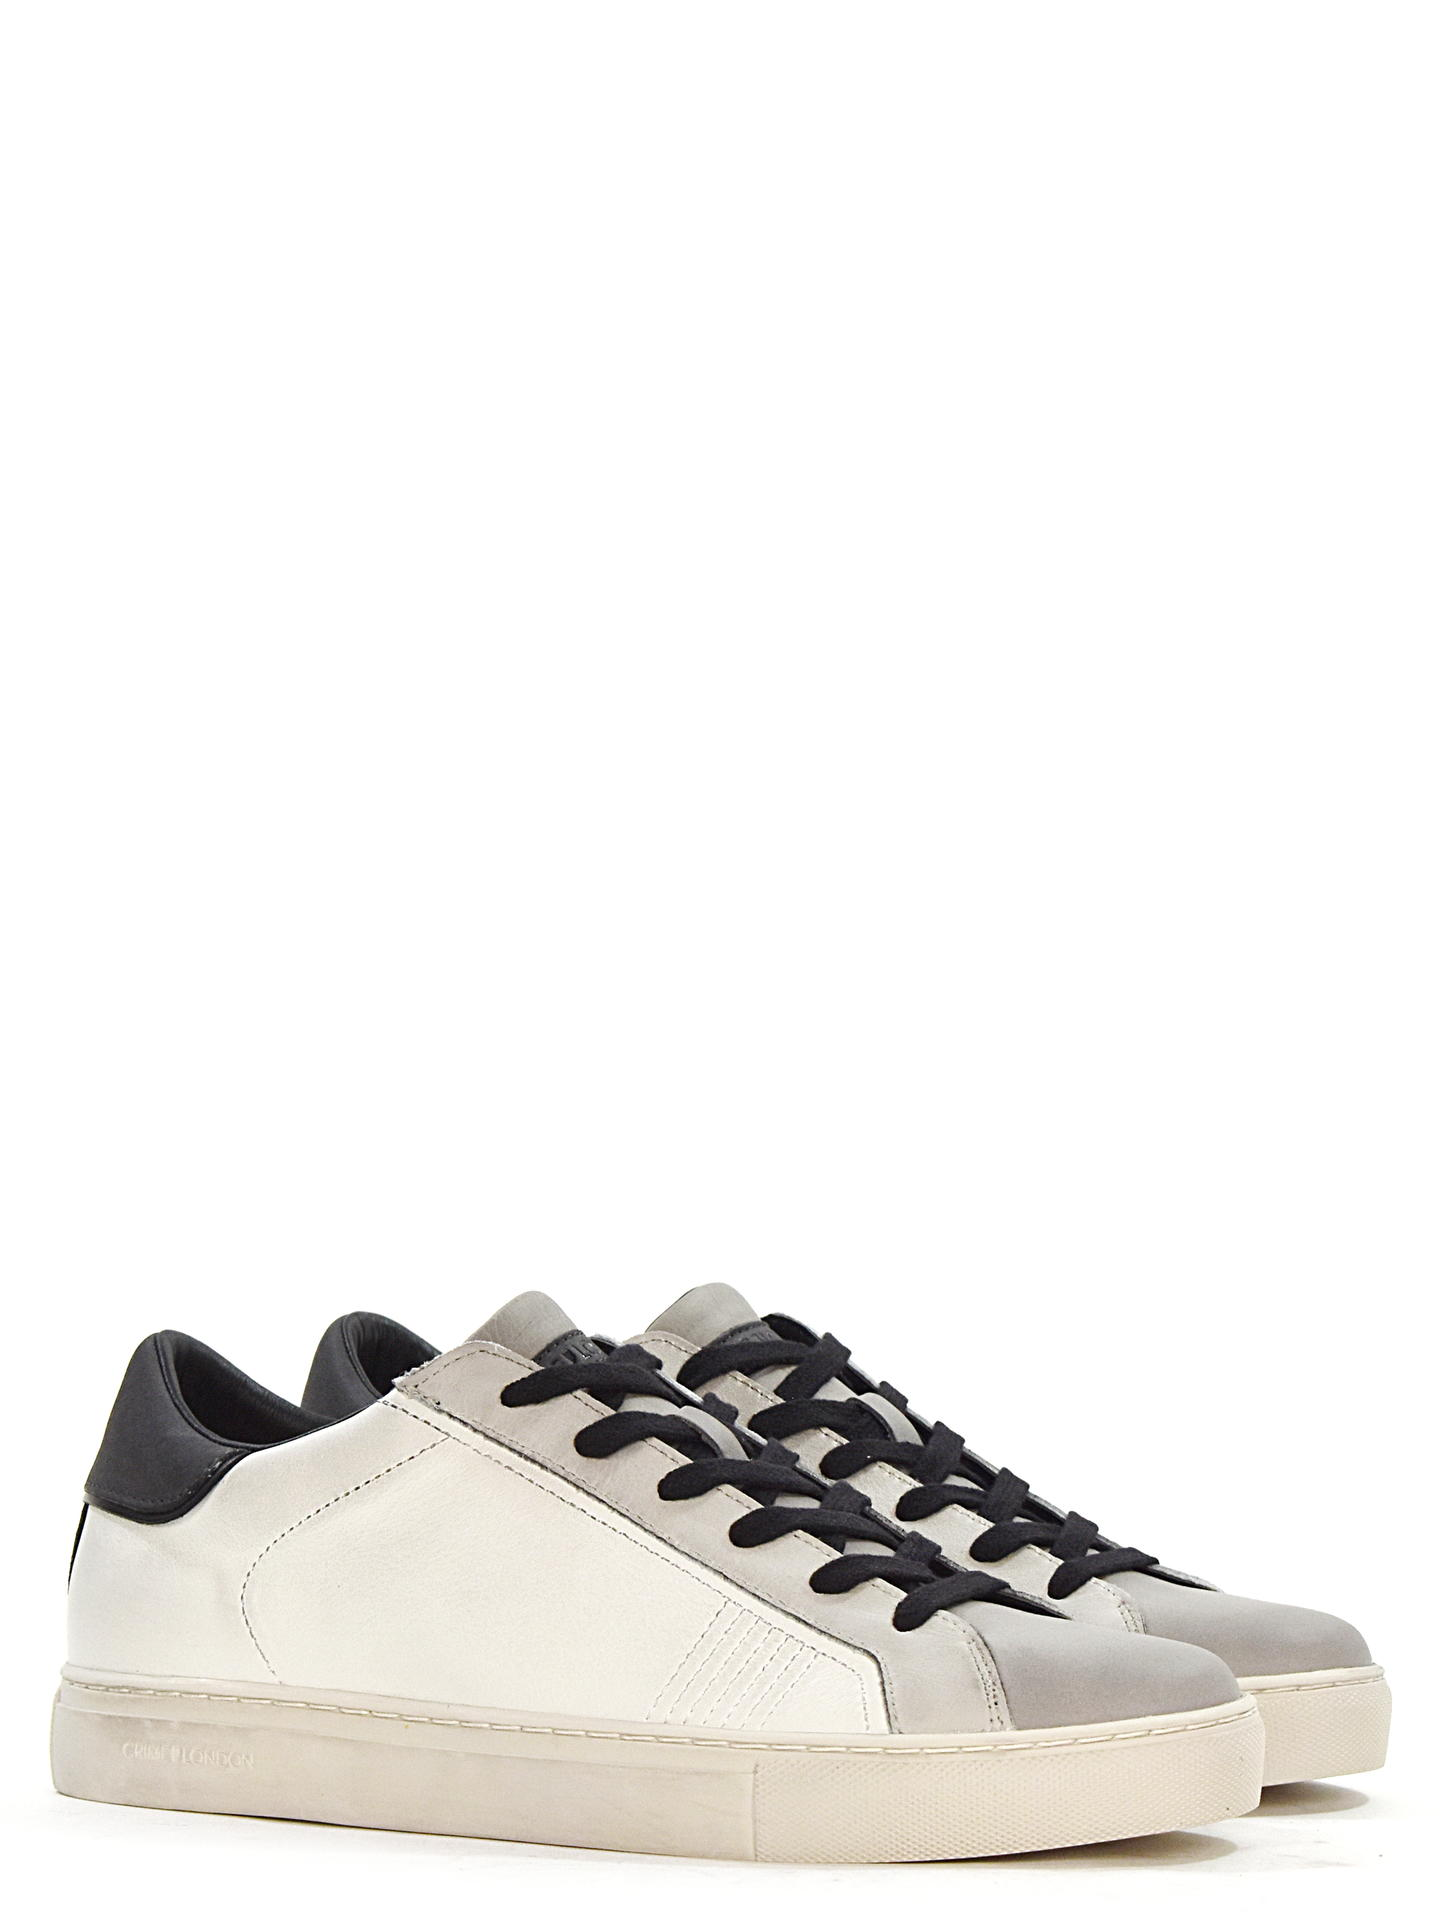 SNEAKERS CRIME LONDON 11606A BIANCO